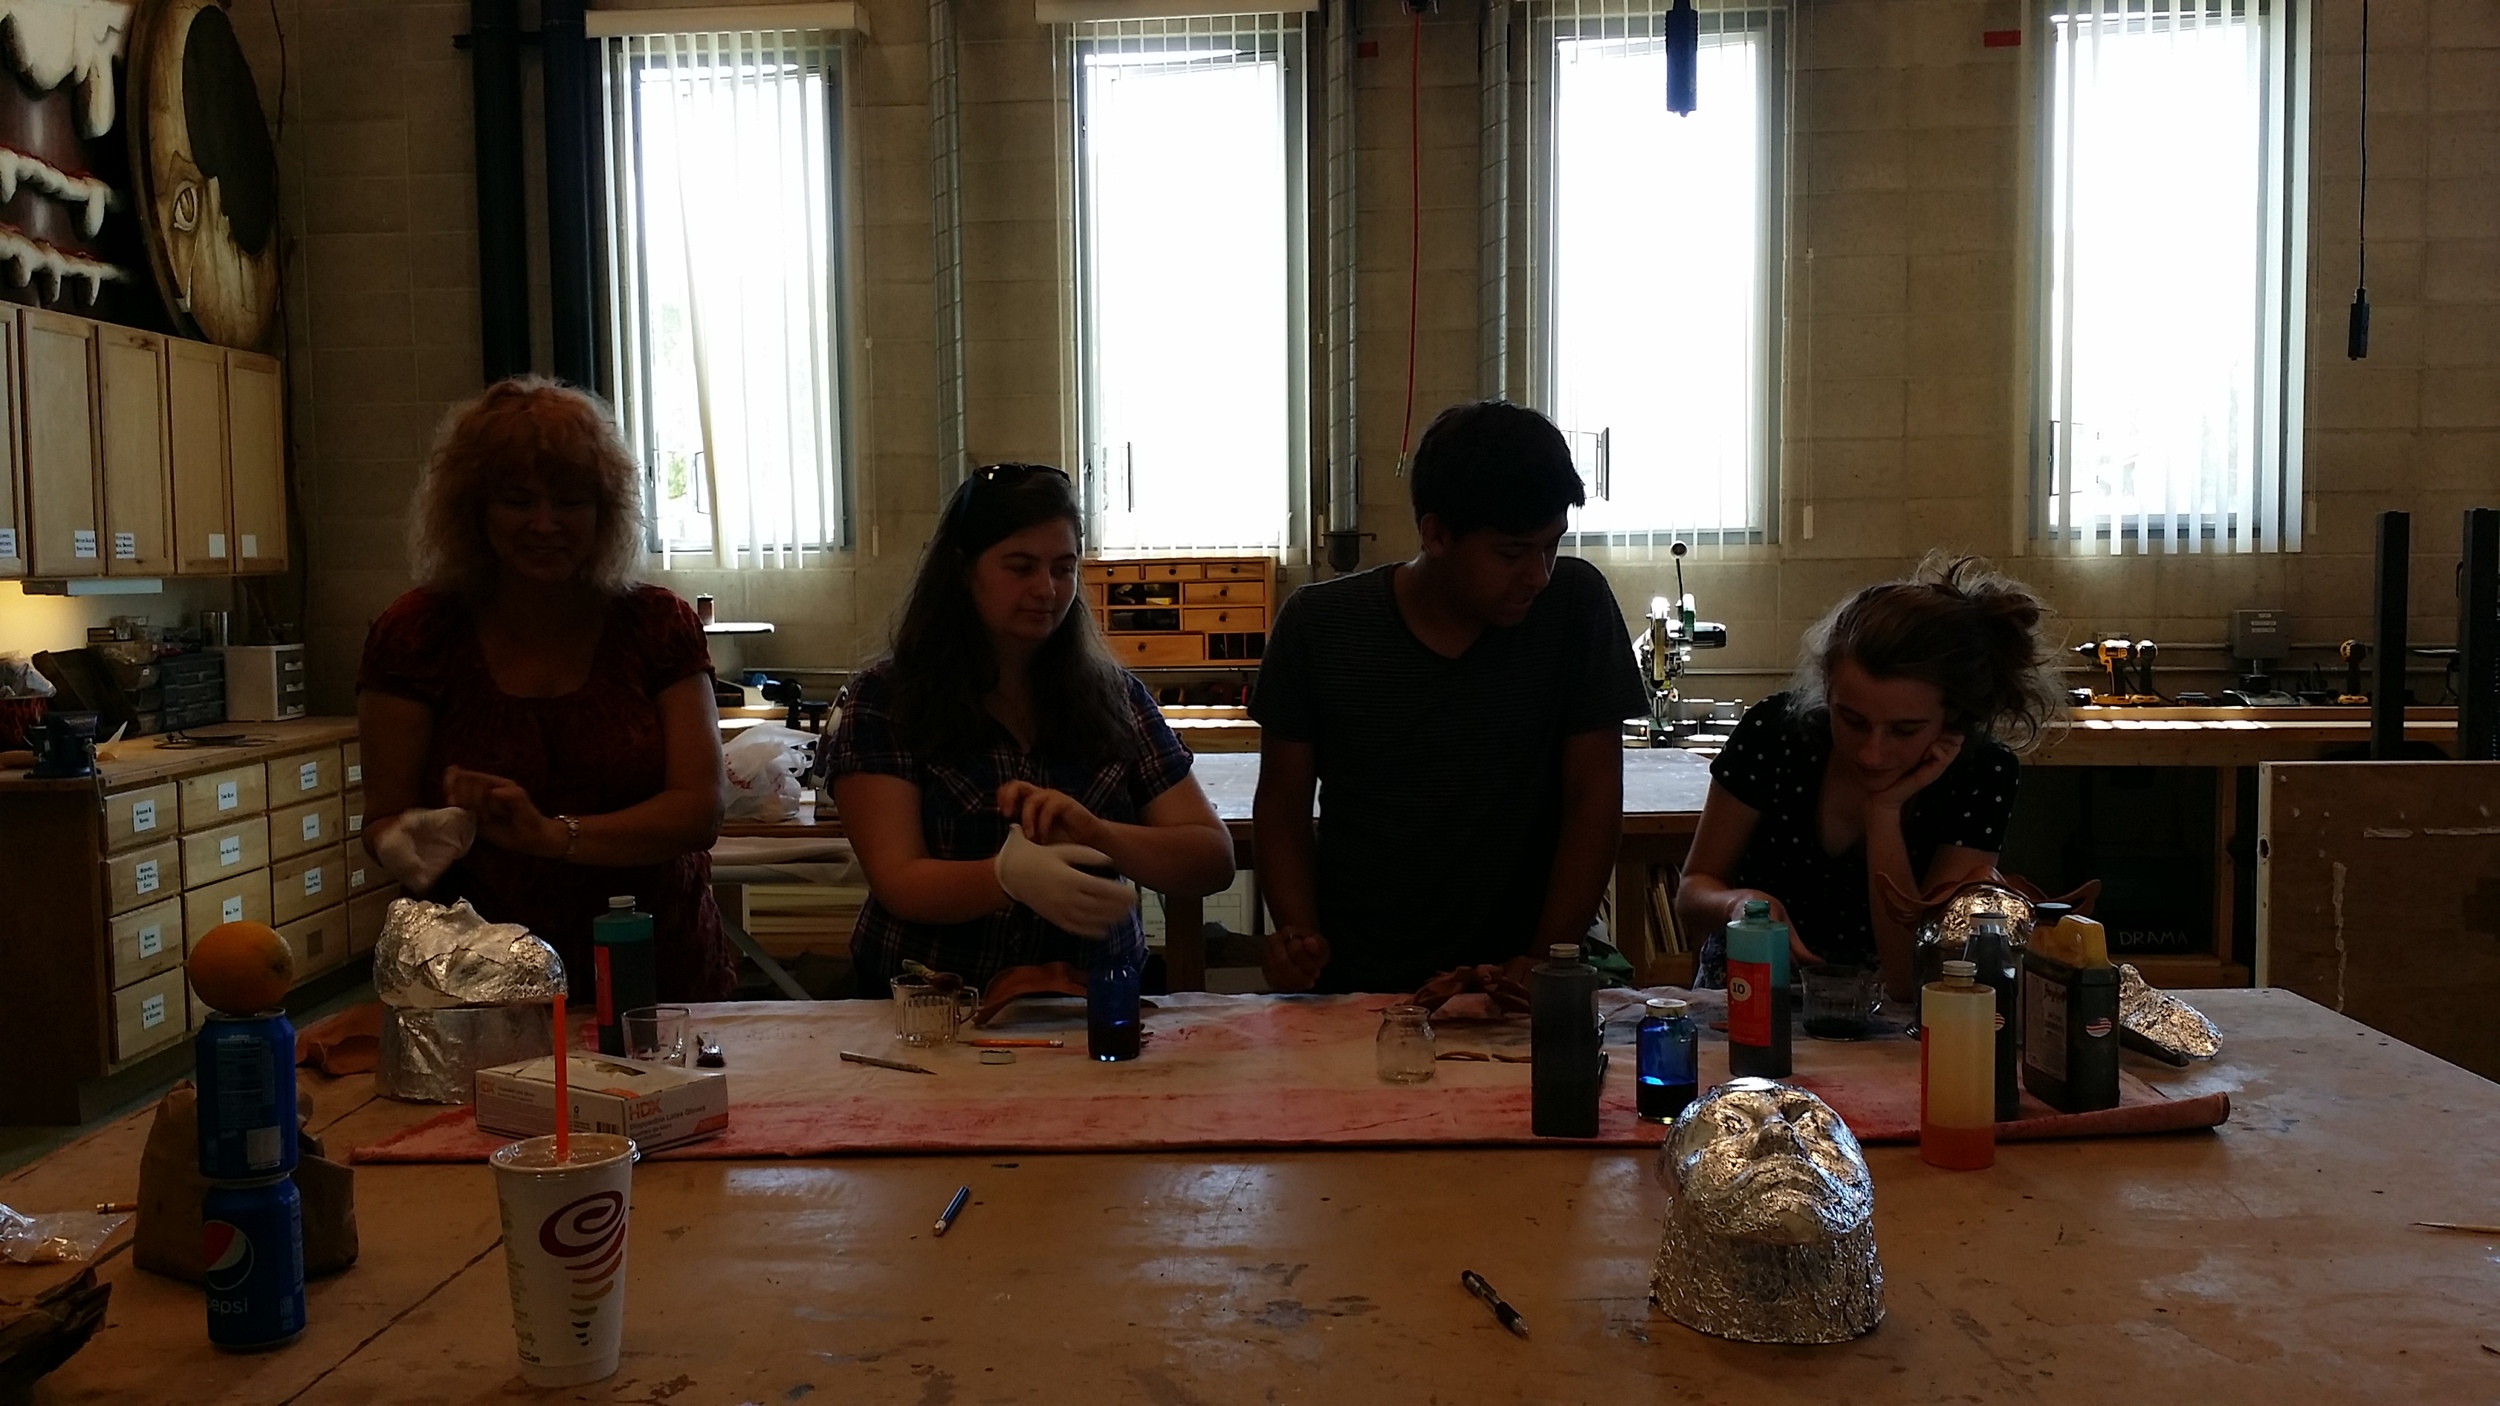 After waiting a day for their masks to dry, the group mixes their dye and stains their final masks.